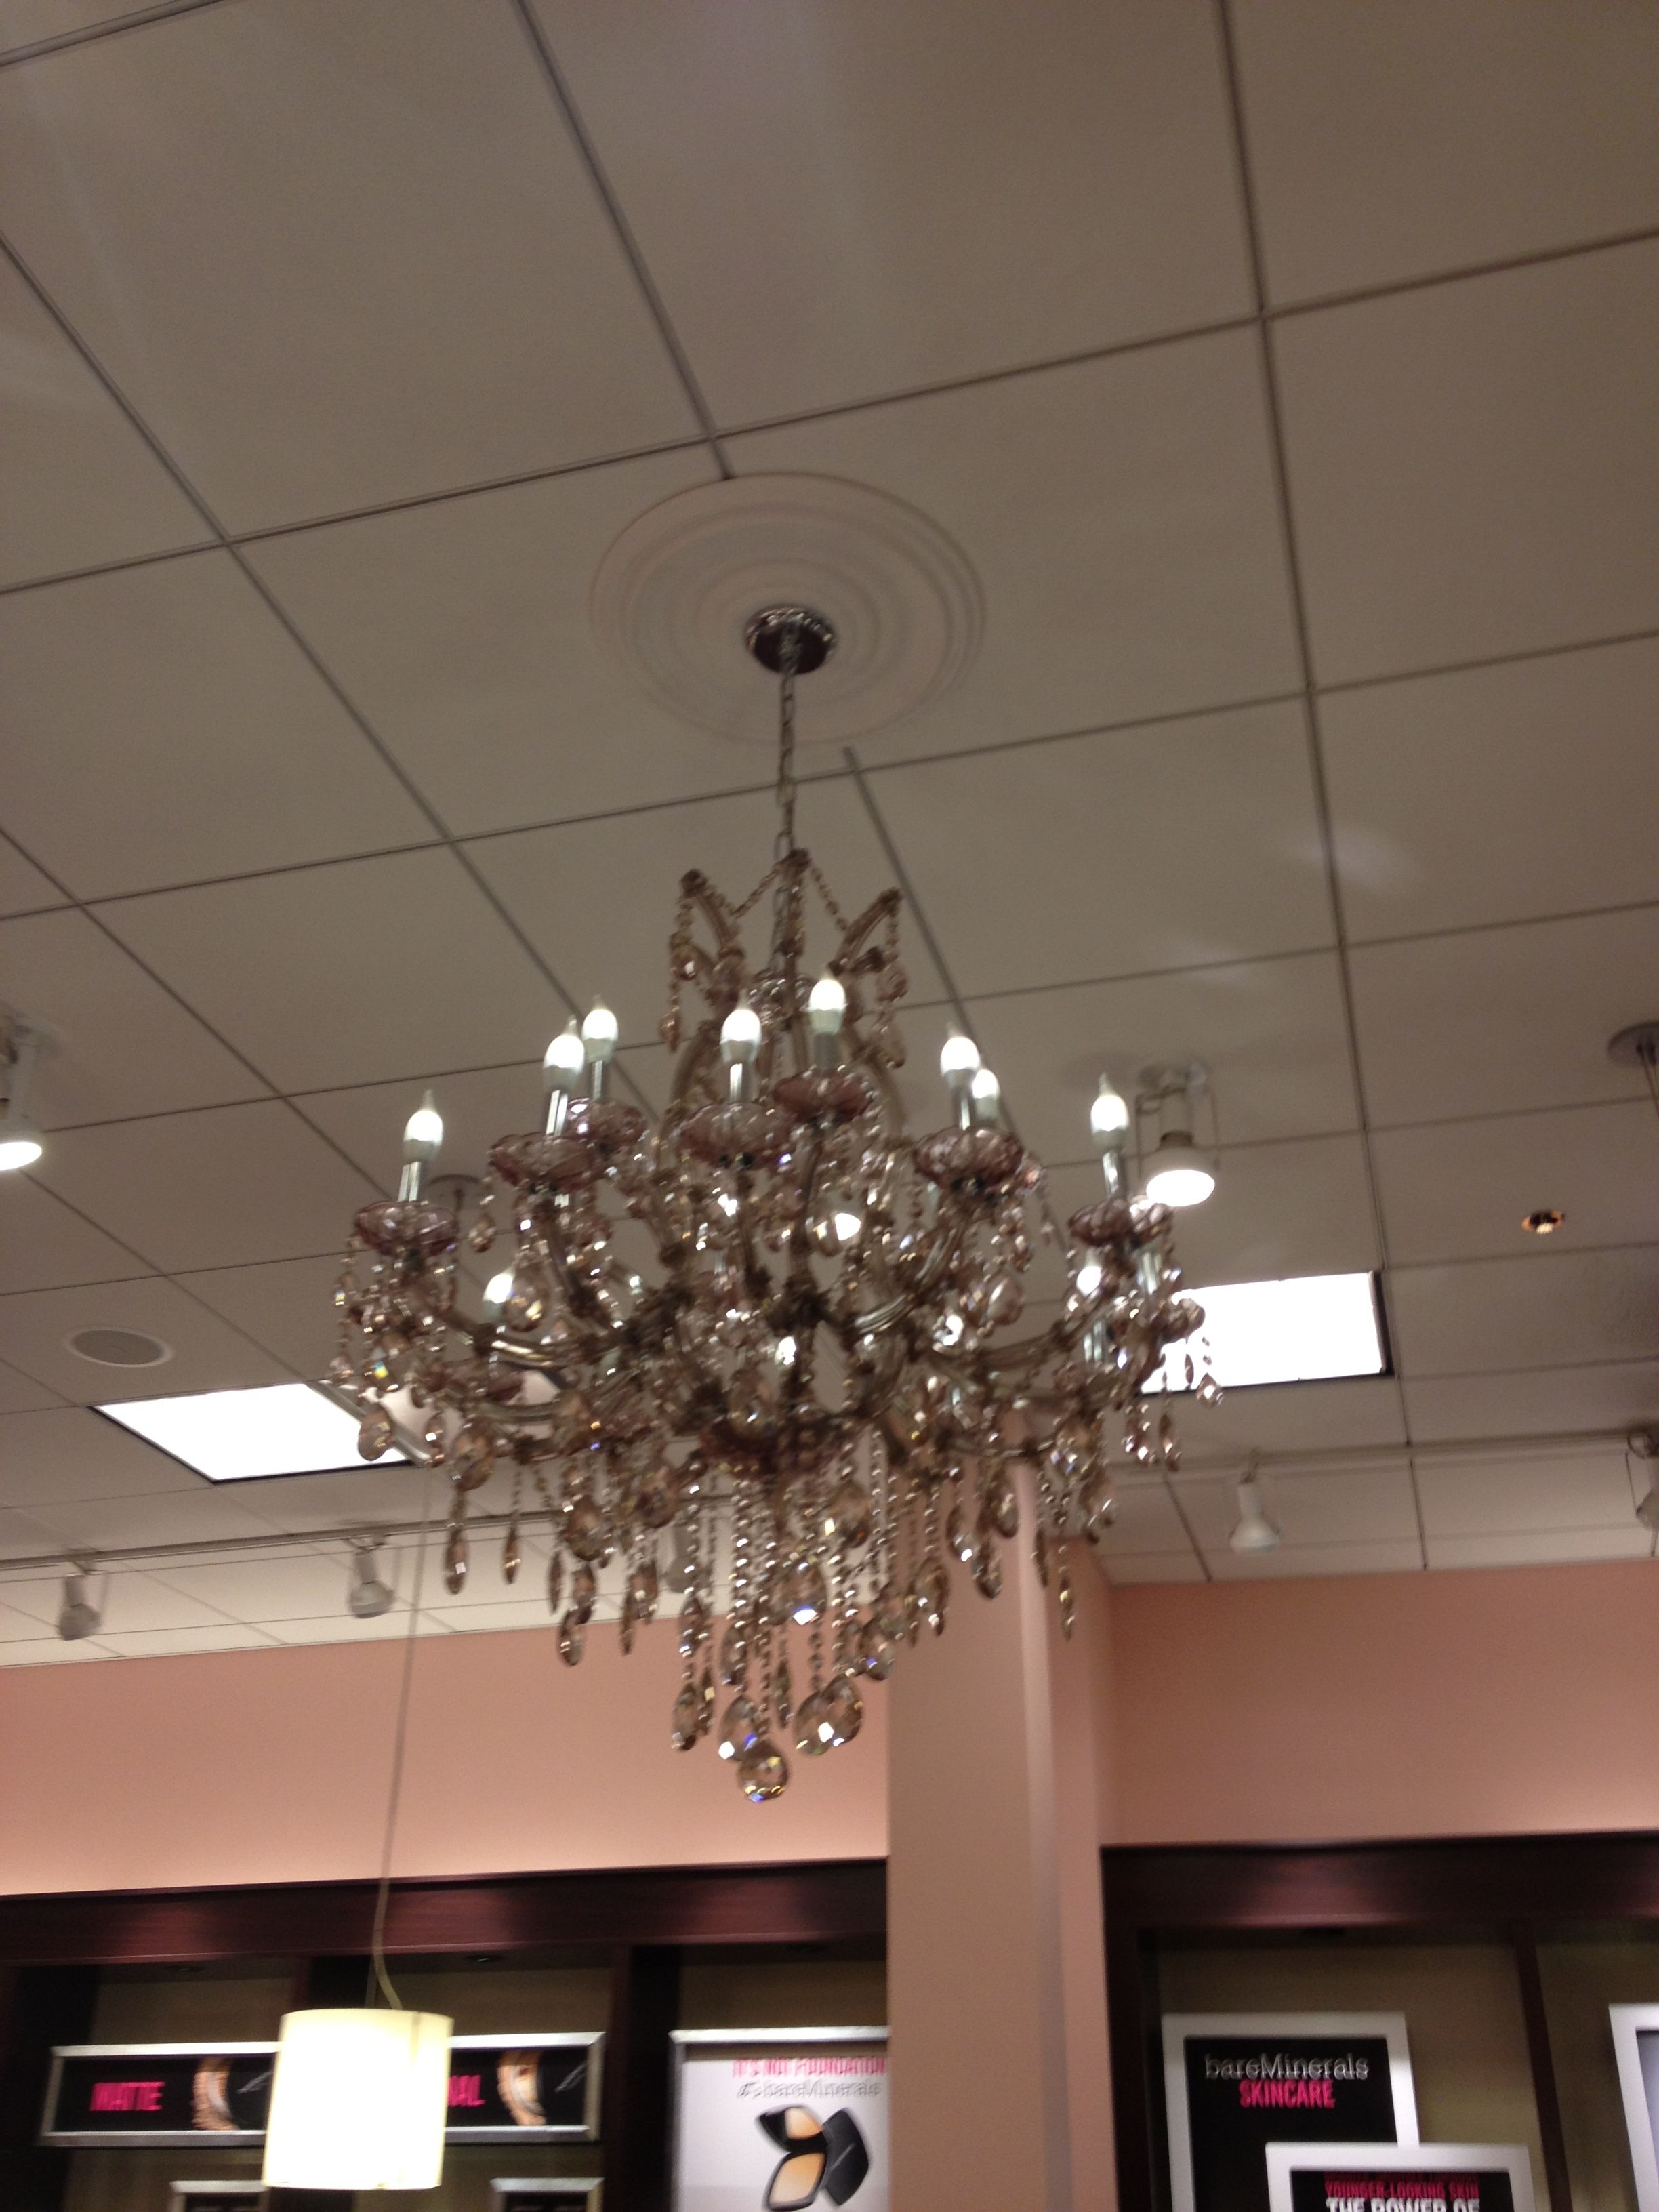 This chandelier is tinges with mauve rather than straight-on clear and is at least glass rather than the plastic I've seen too often lately. Found in the Bare Essentials Store as part of their fixtures.